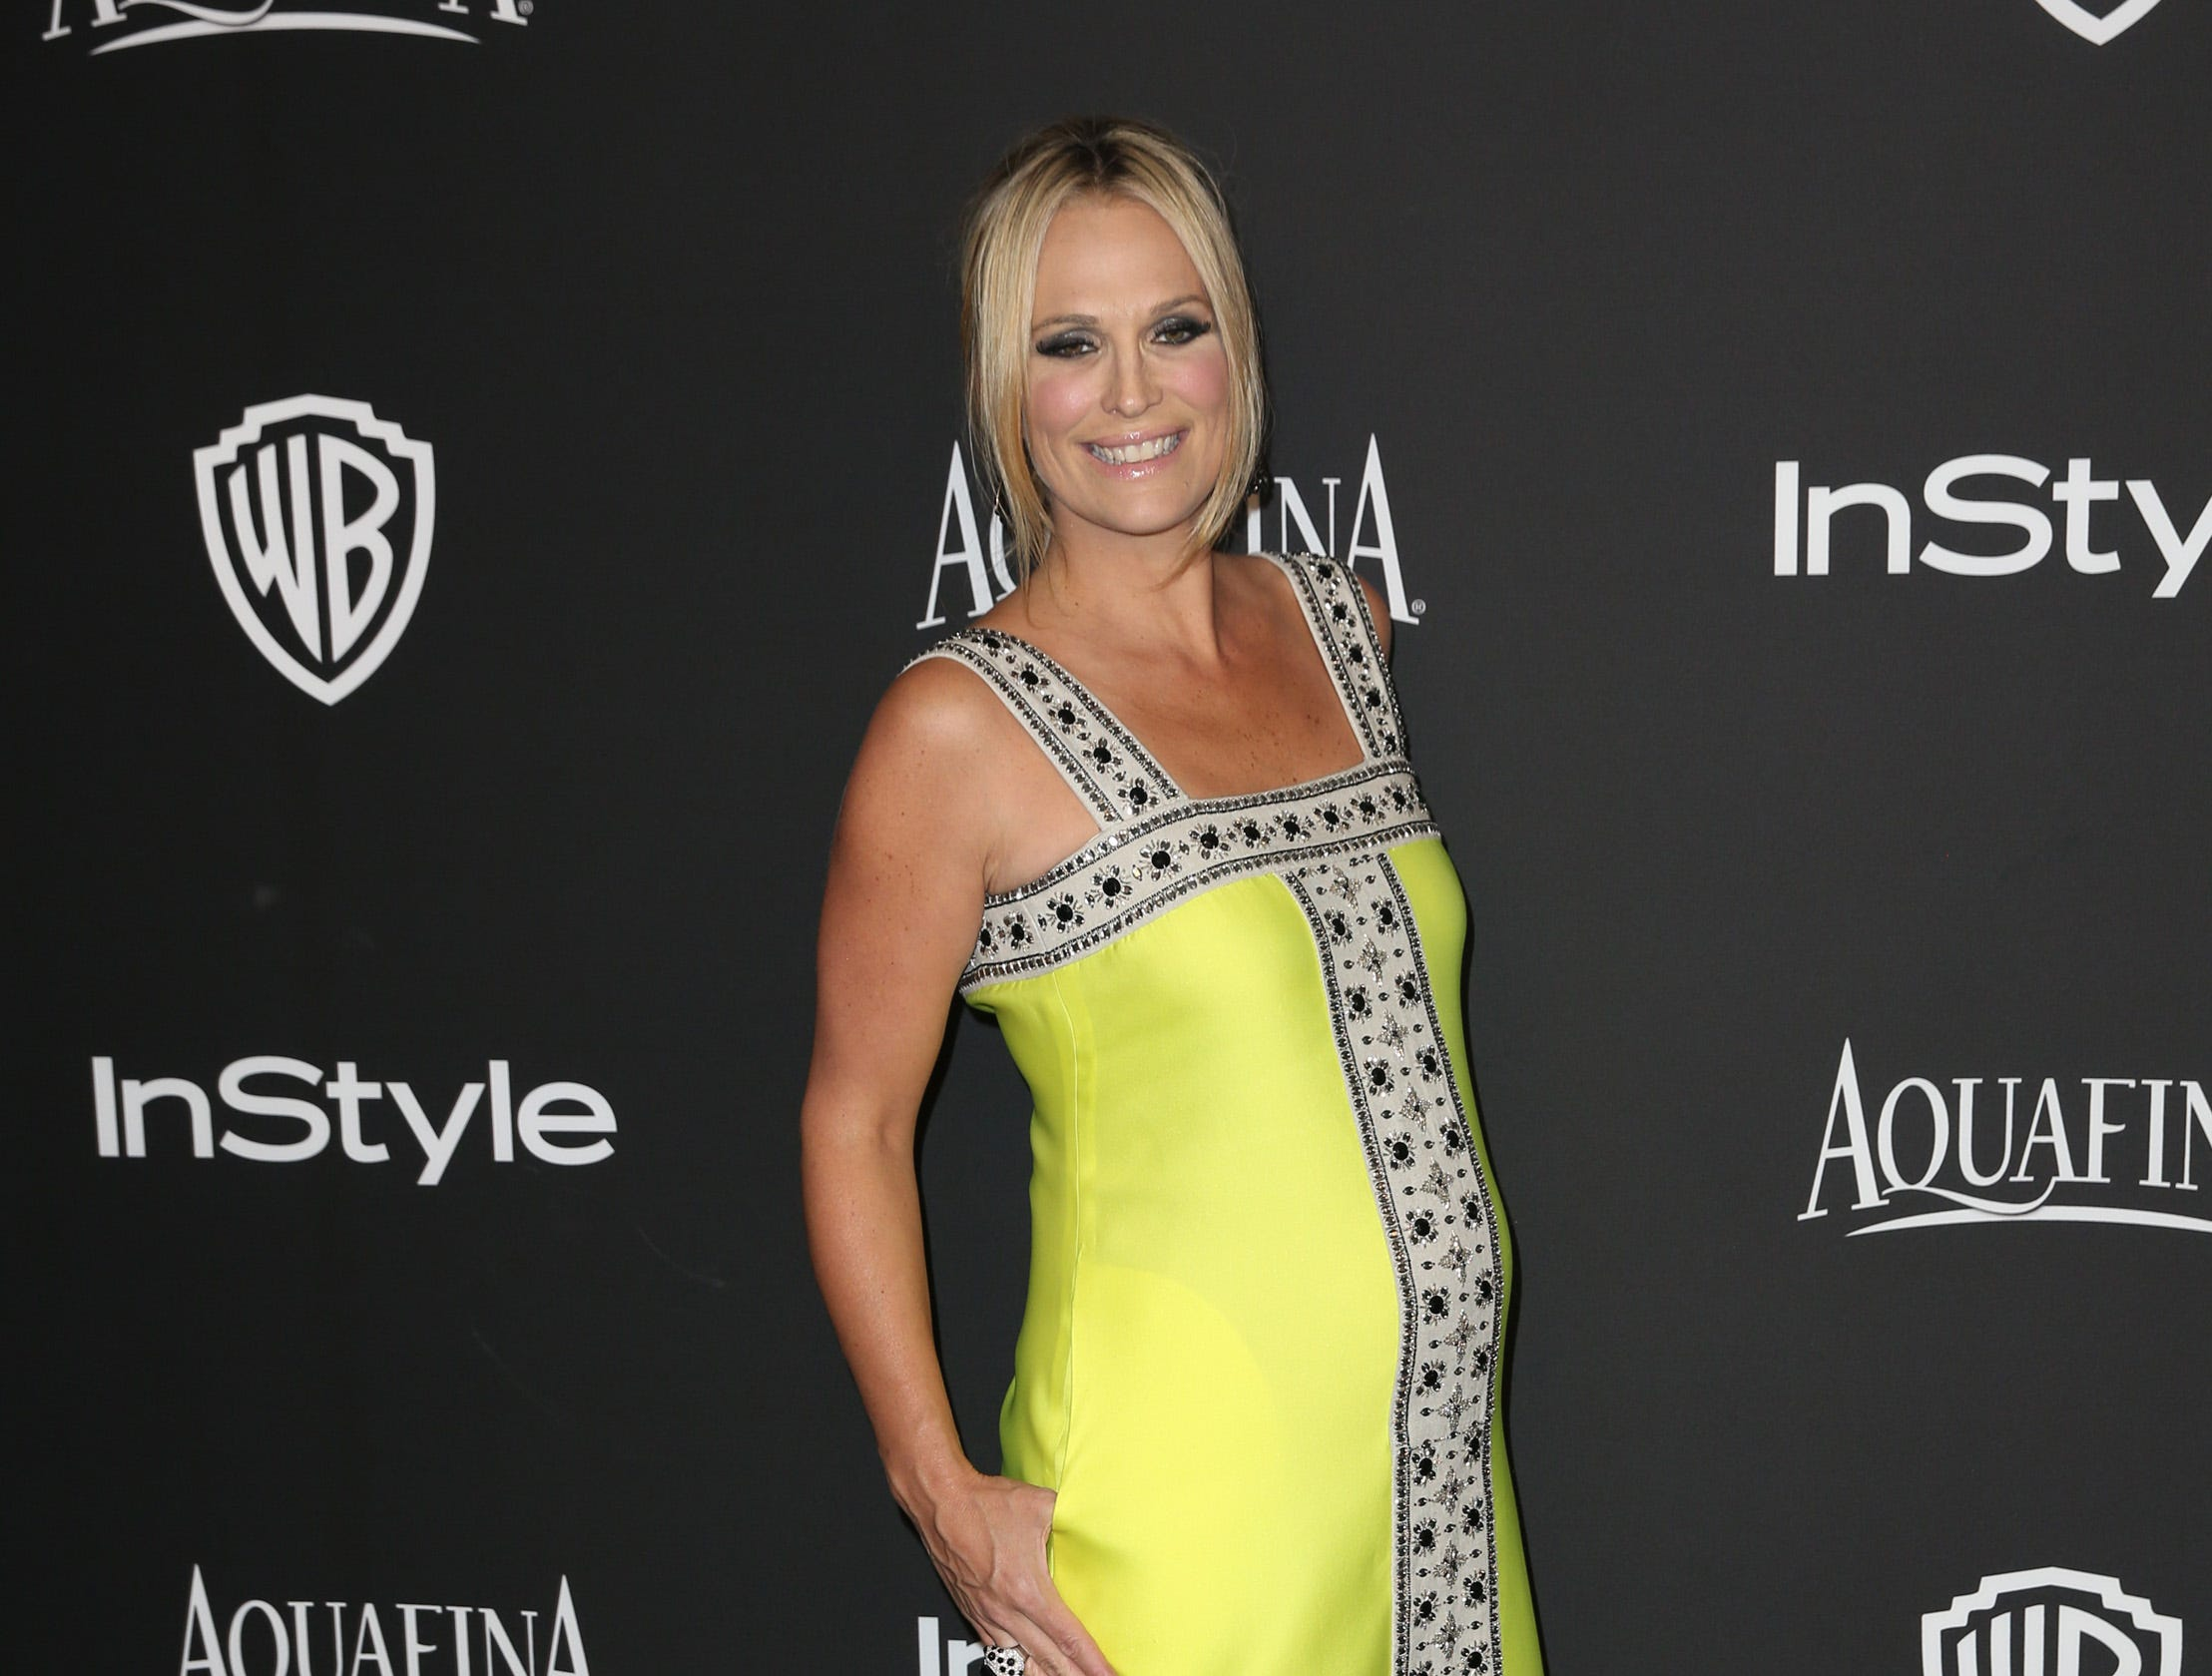 Molly Sims arrives at the 16th annual InStyle and Warner Bros. Golden Globes afterparty at the Beverly Hilton Hotel on Sunday, Jan. 11, 2015, in Beverly Hills, Calif. (Photo by Matt Sayles/Invision/AP) ORG XMIT: CAAK105